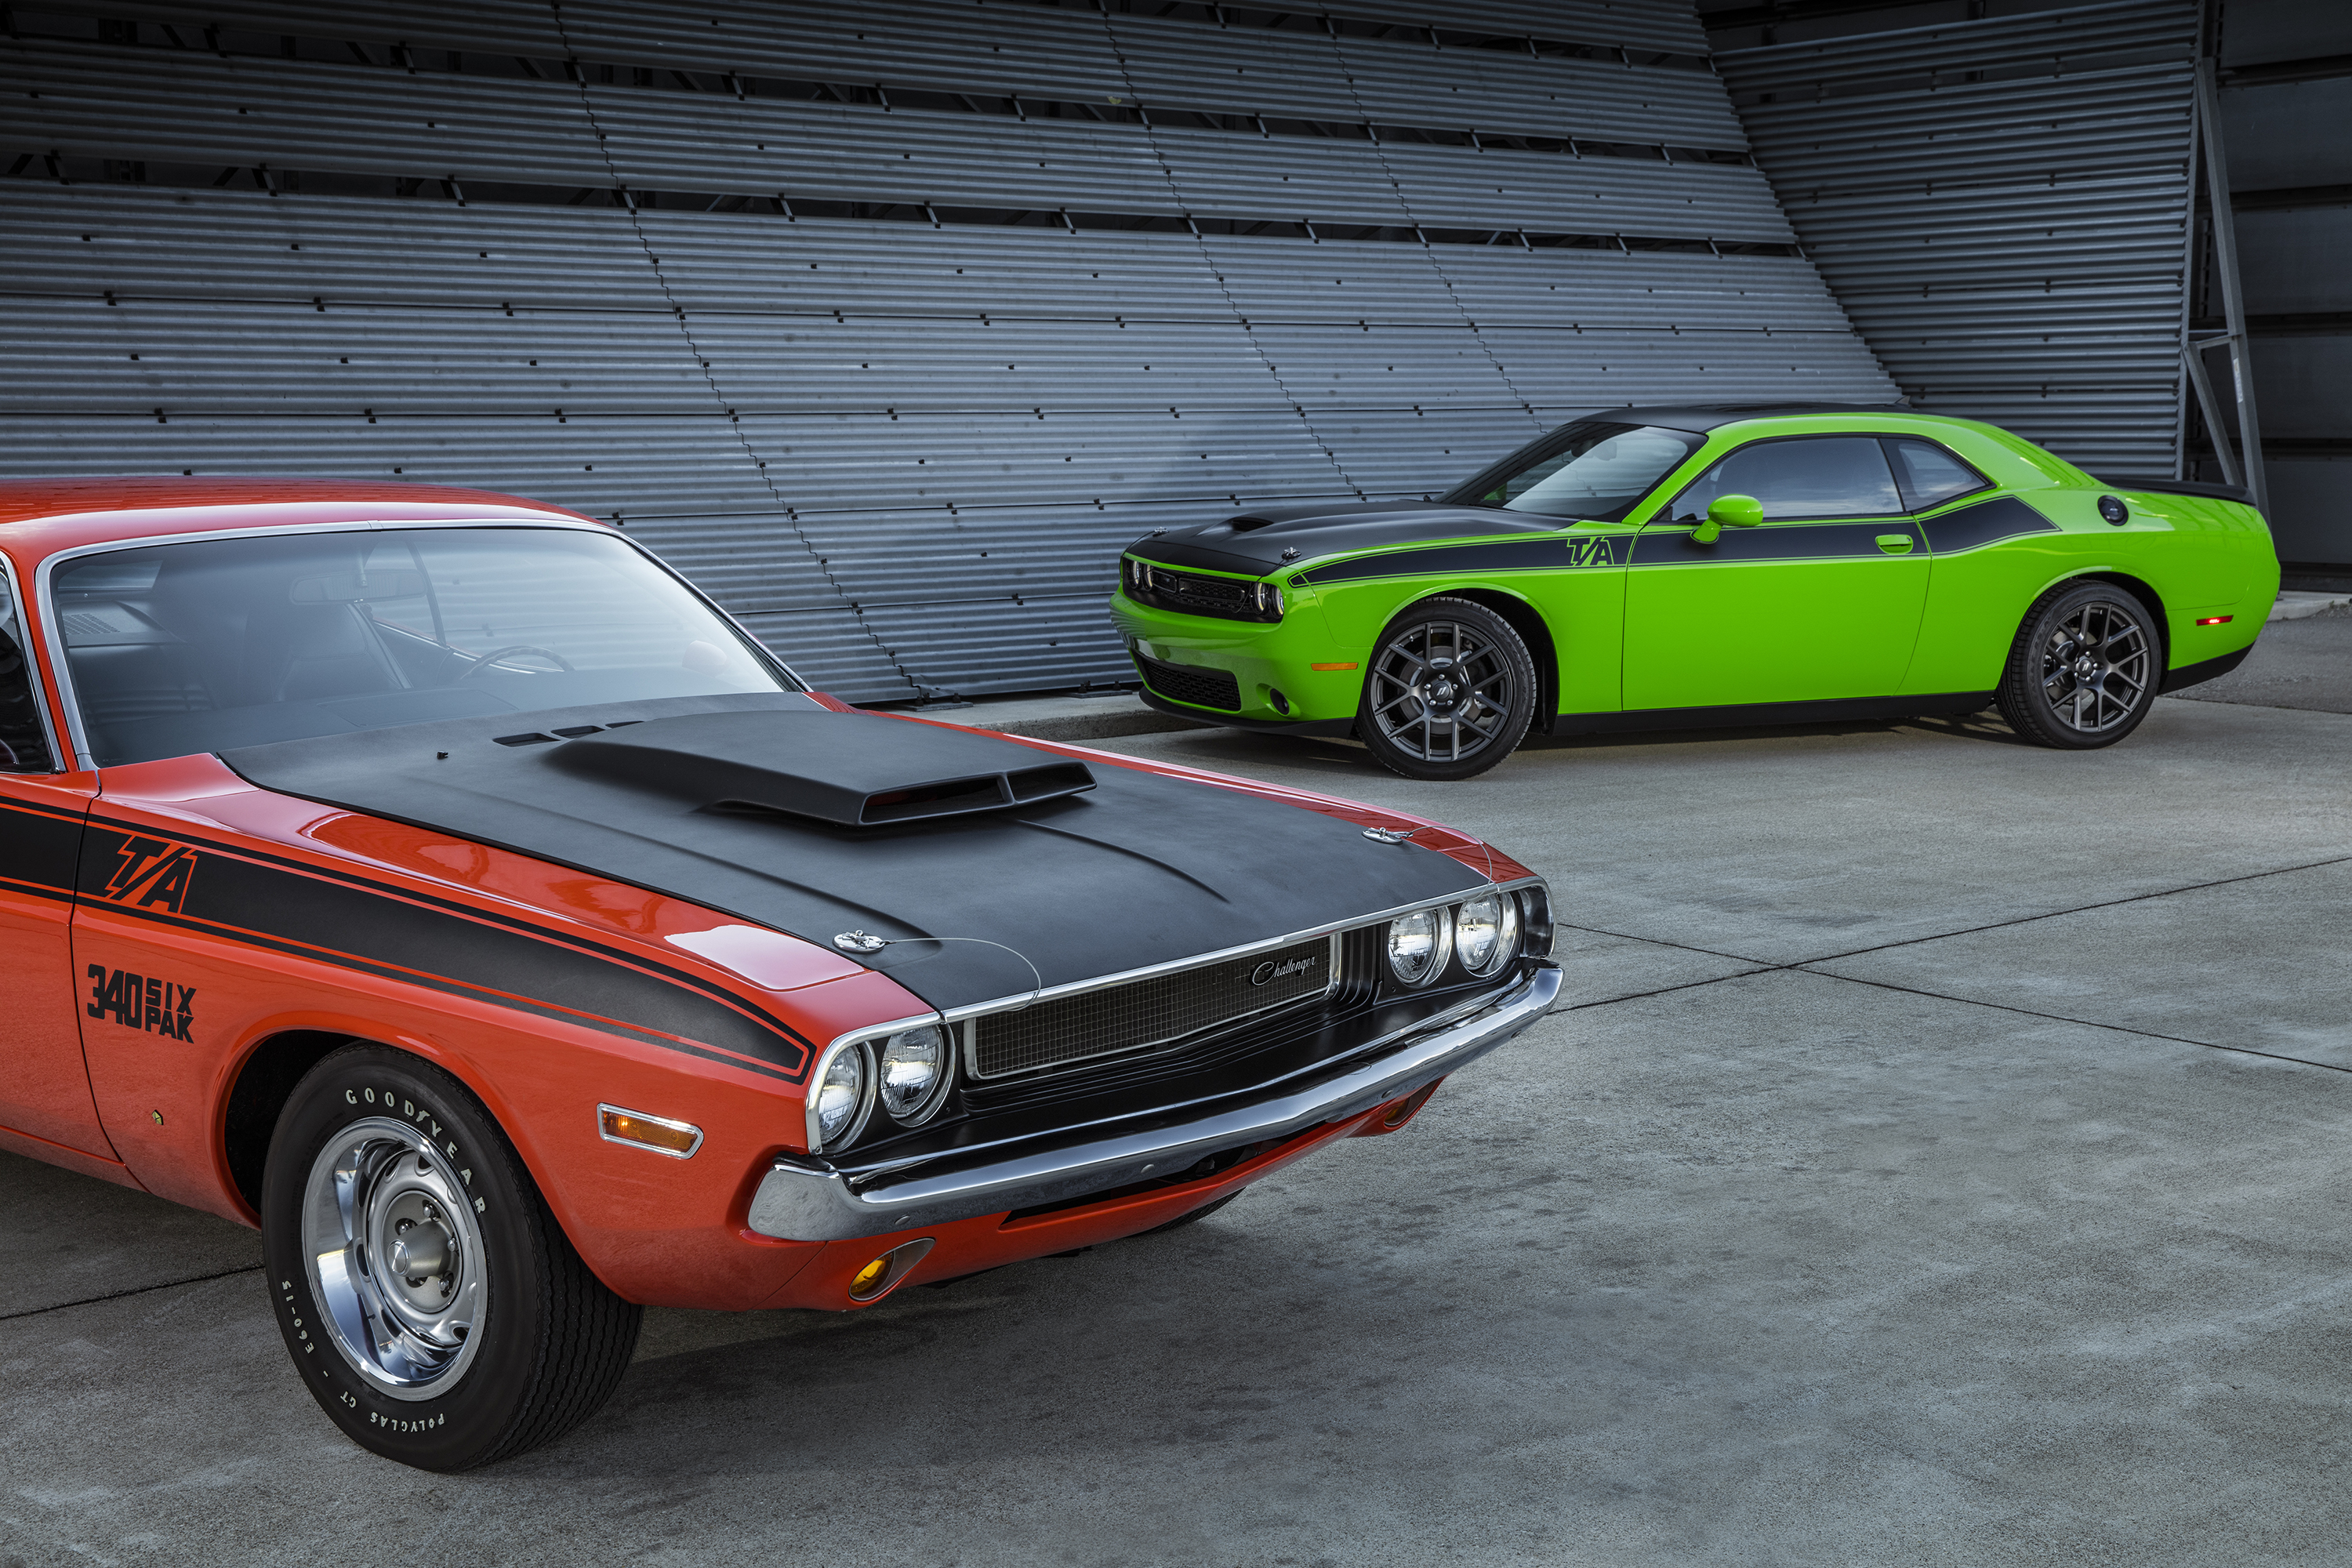 1970 Dodge Challenger T/A (left) and 2017 Dodge Challenger T/A (